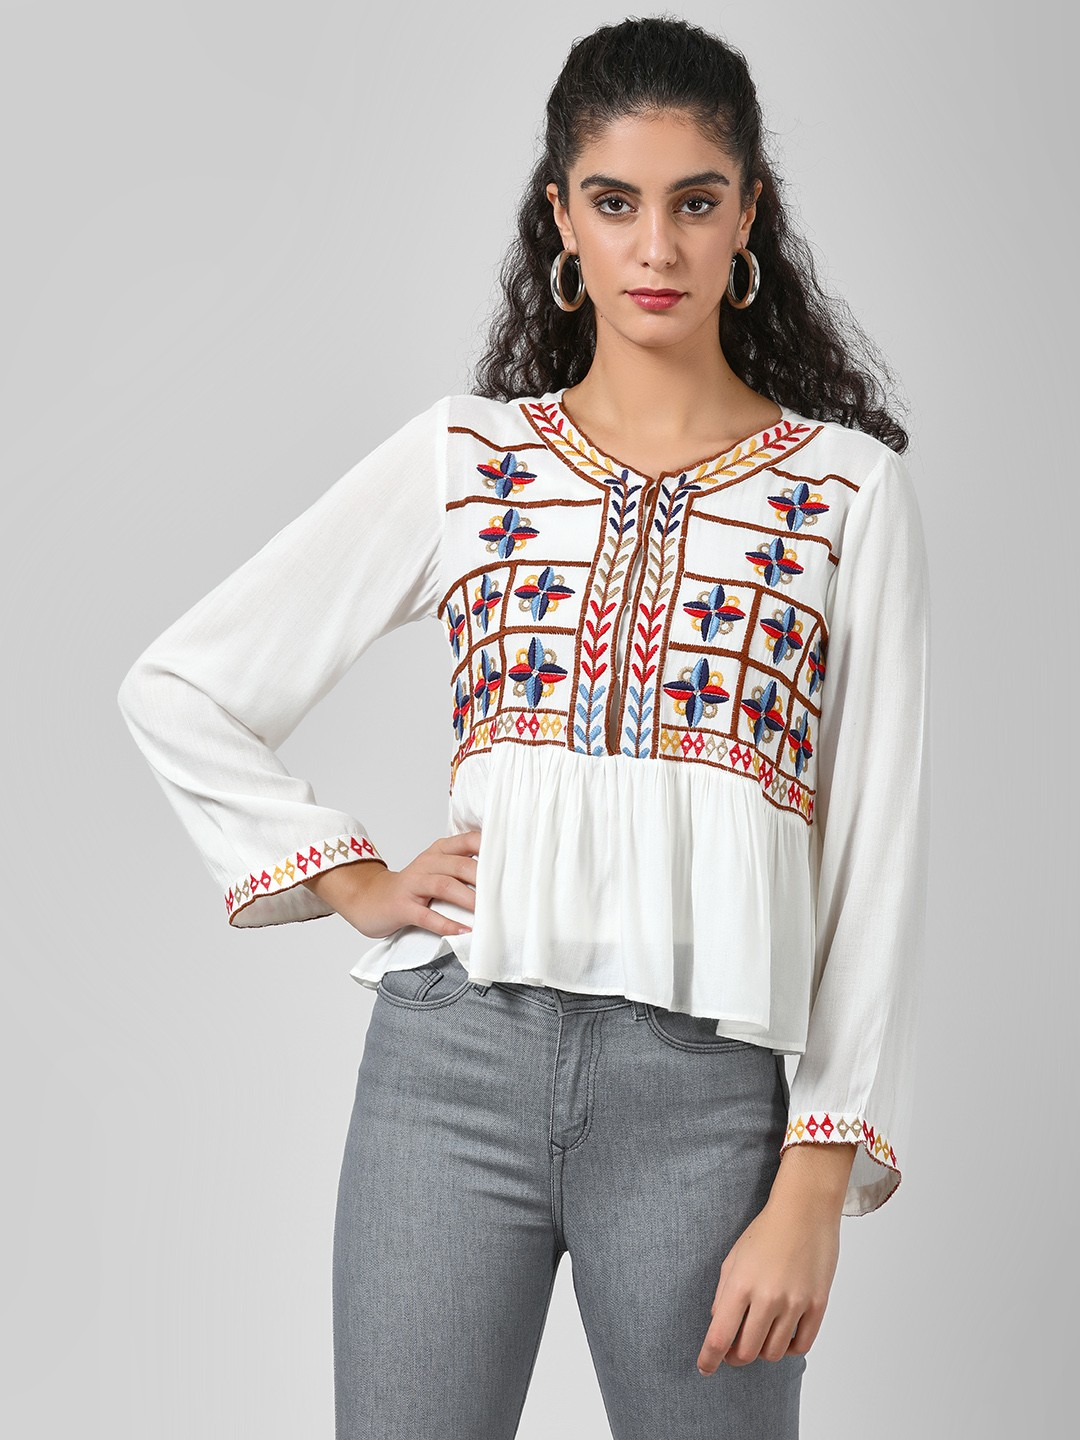 Rena Love White Blouse With Embroidered Bodice 1